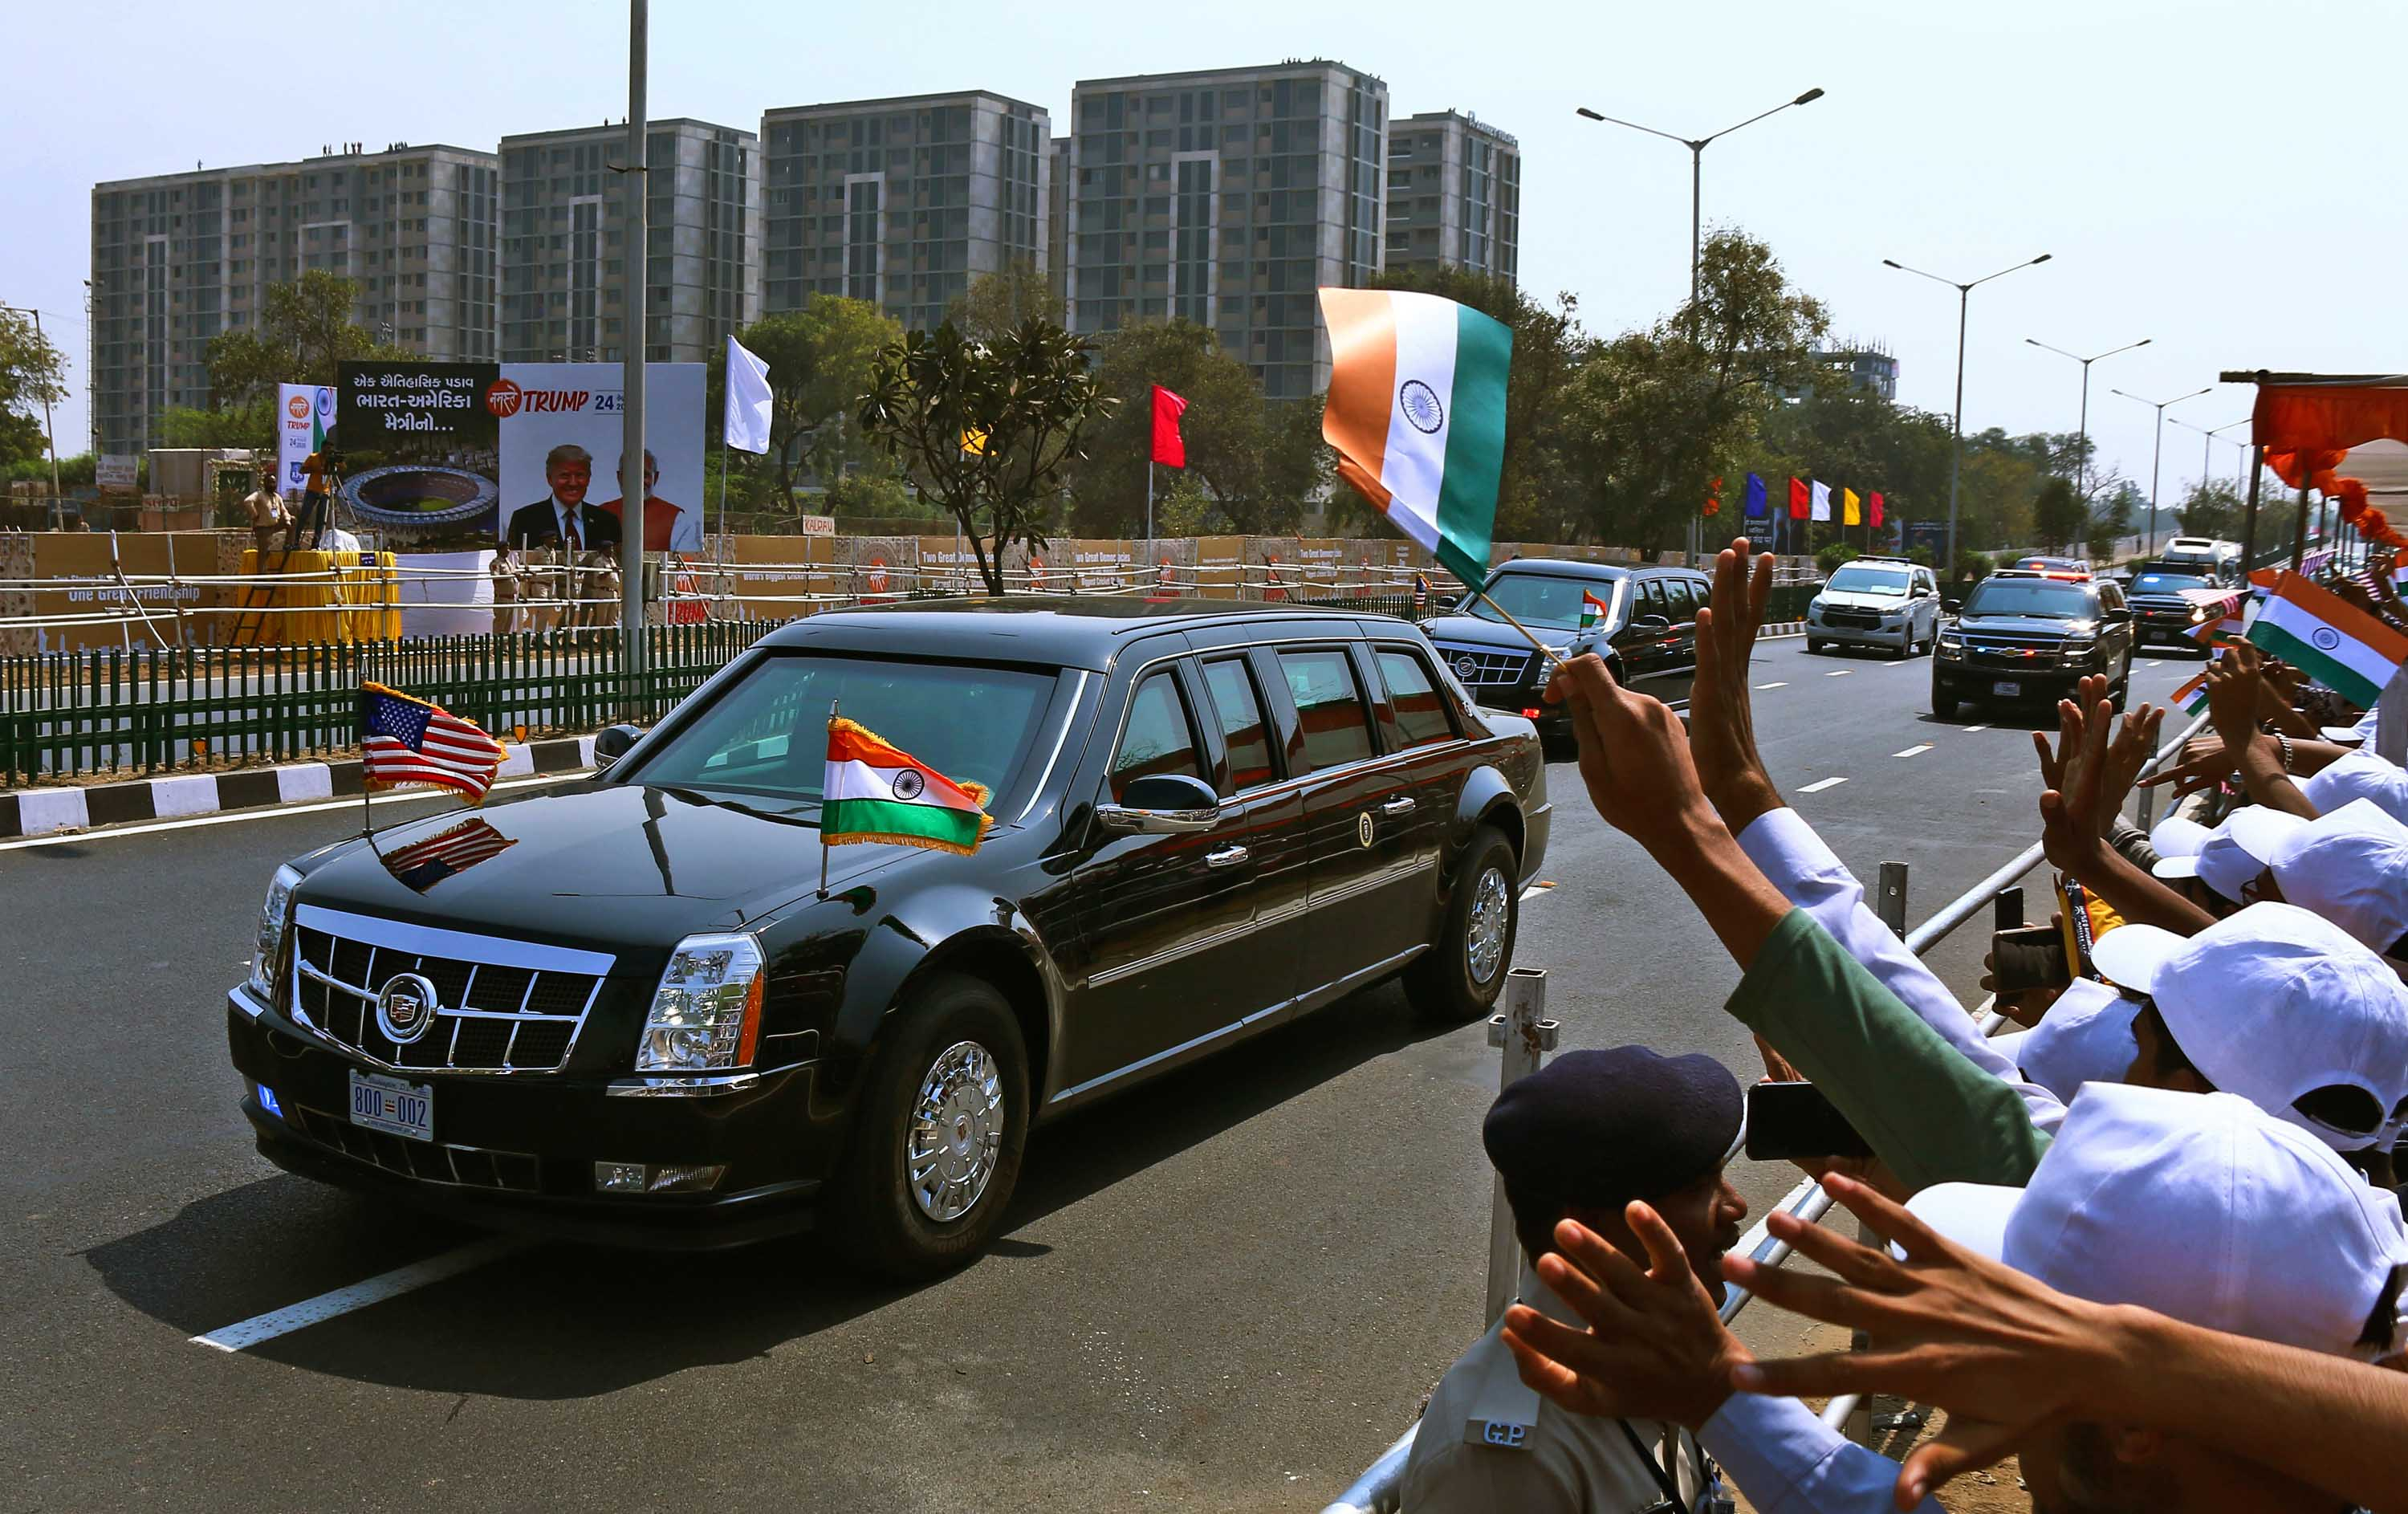 Indians wave at President Trump's motorcade in Ahmedabad, India, on Monday.